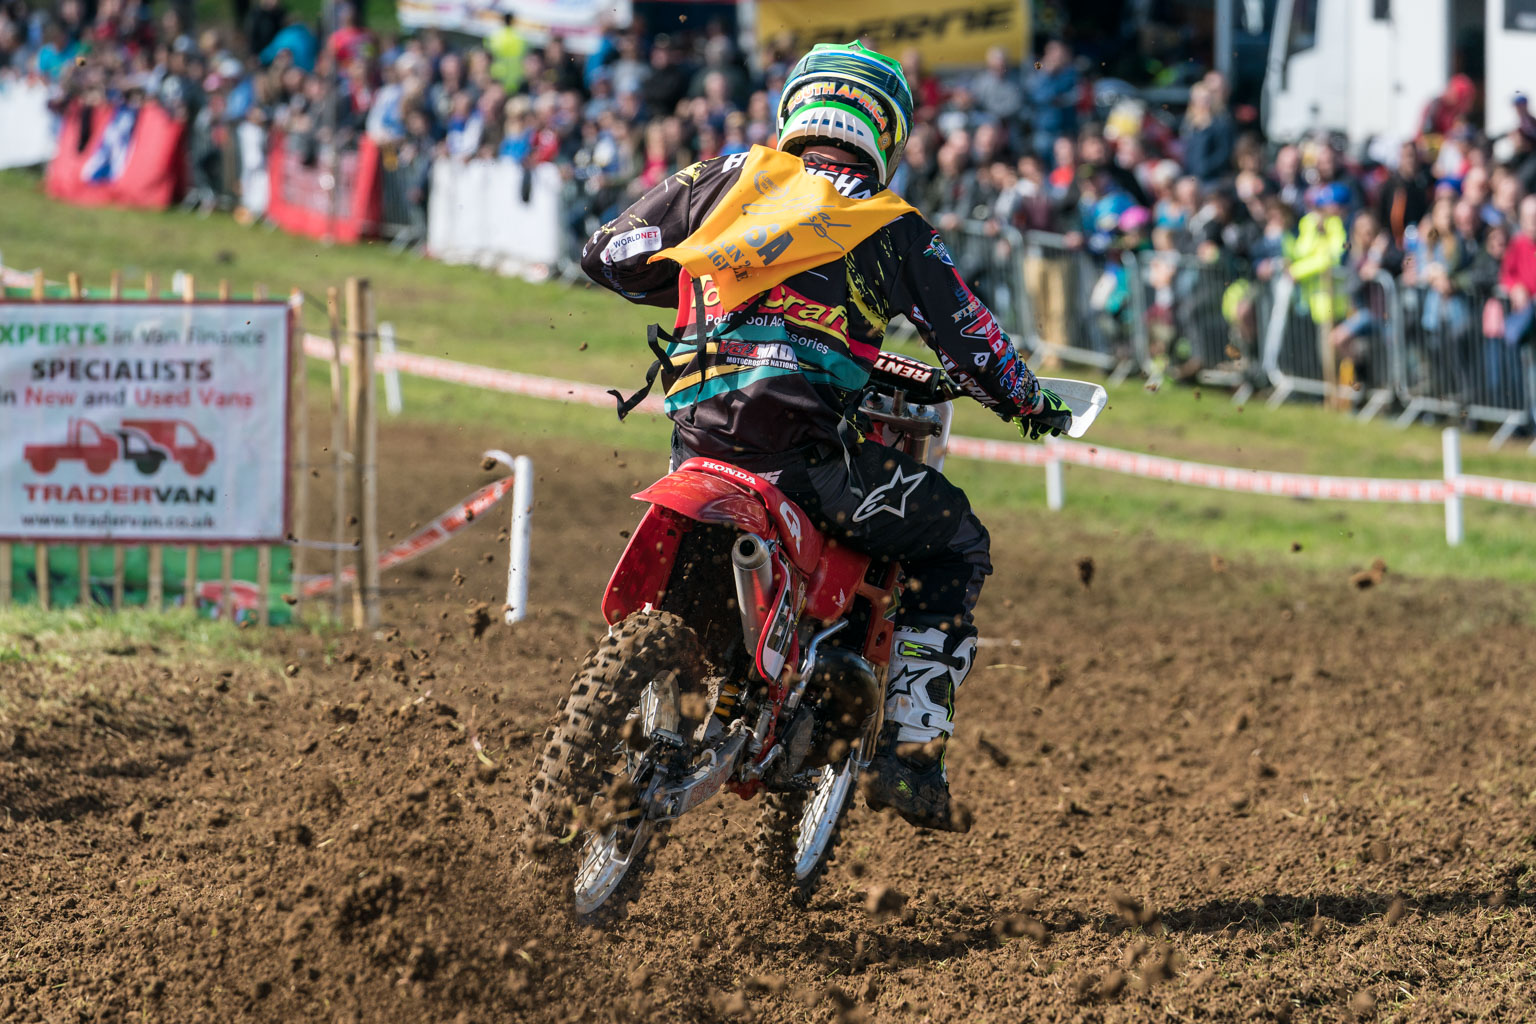 Nev Bradshaw won both Evo Nations motos